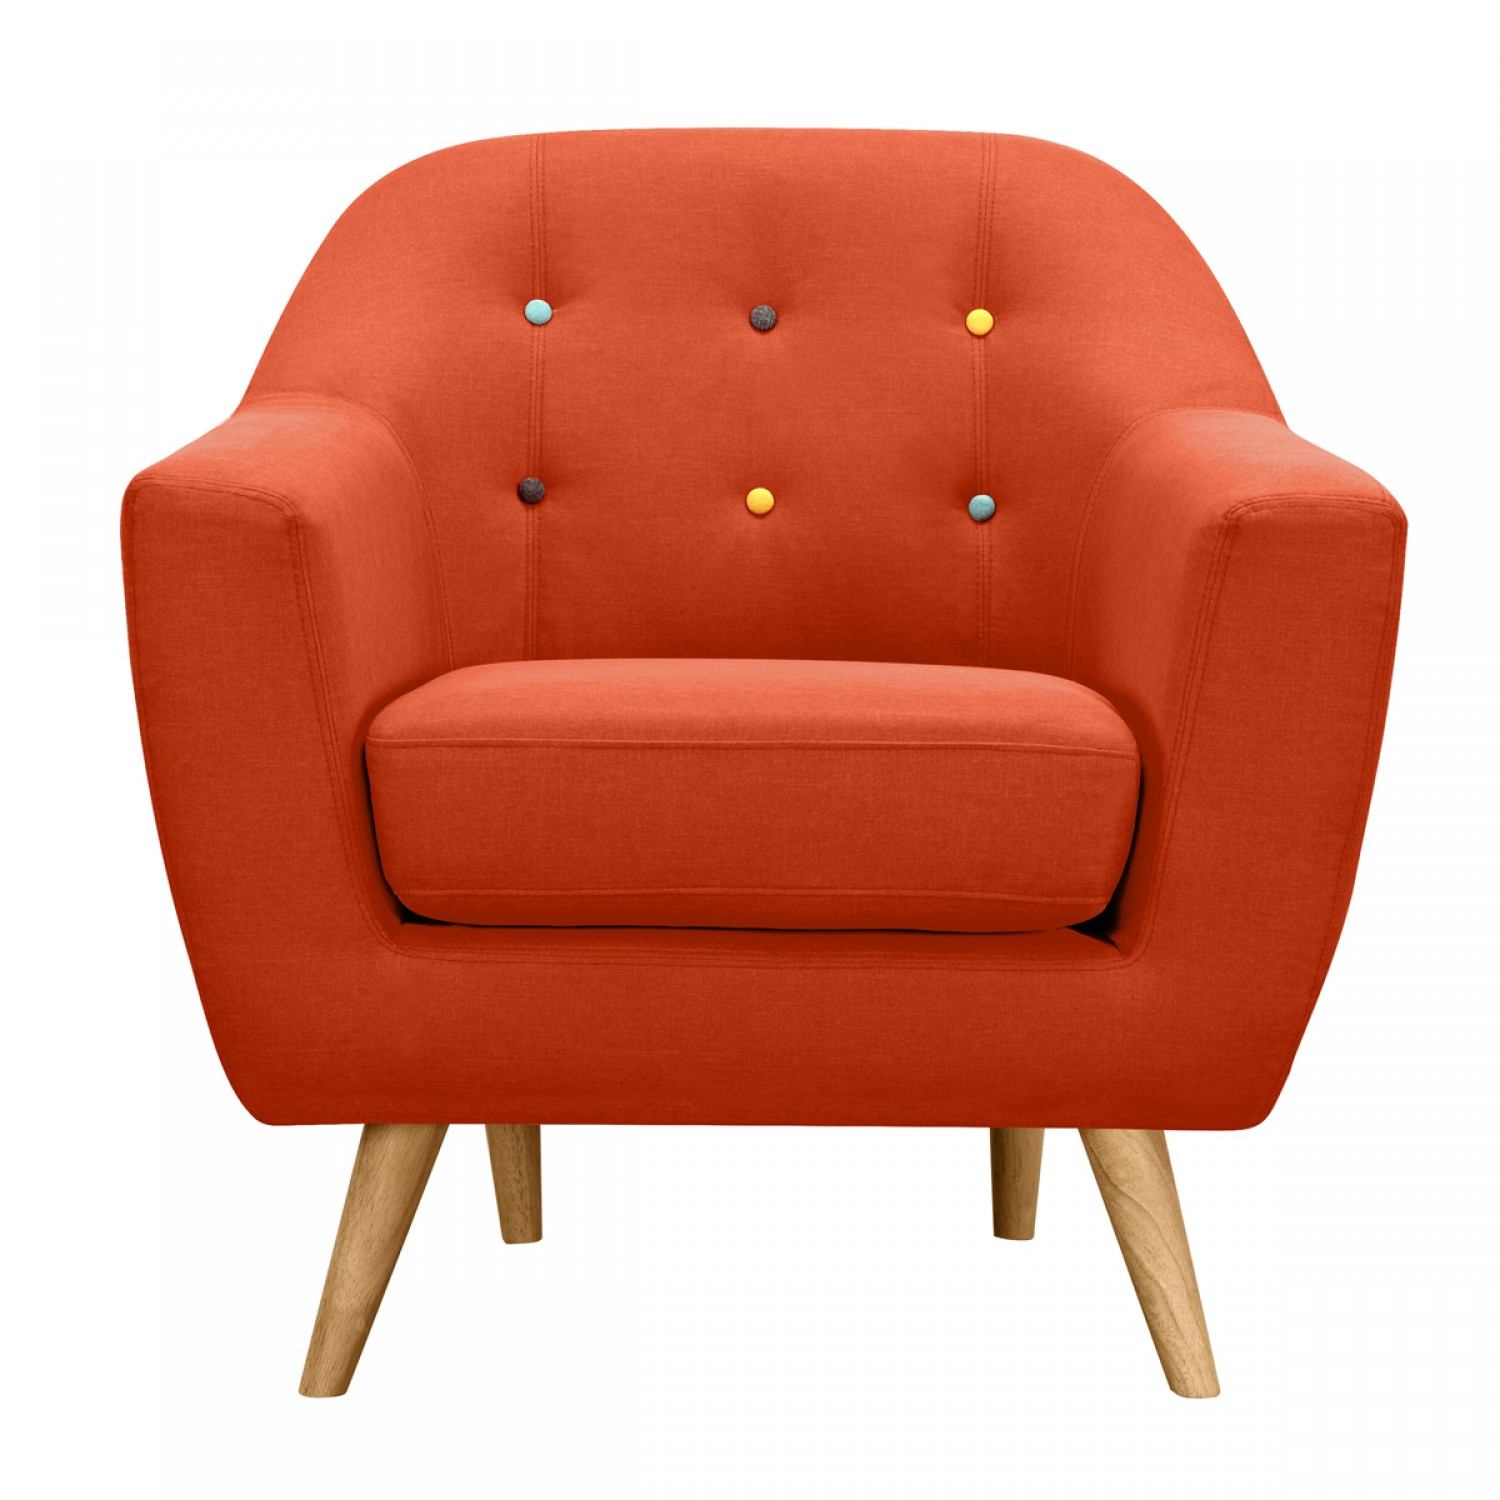 Fauteuil Vejen Orange Boutons Multicolores Koya Design - Fauteuil multicolore design